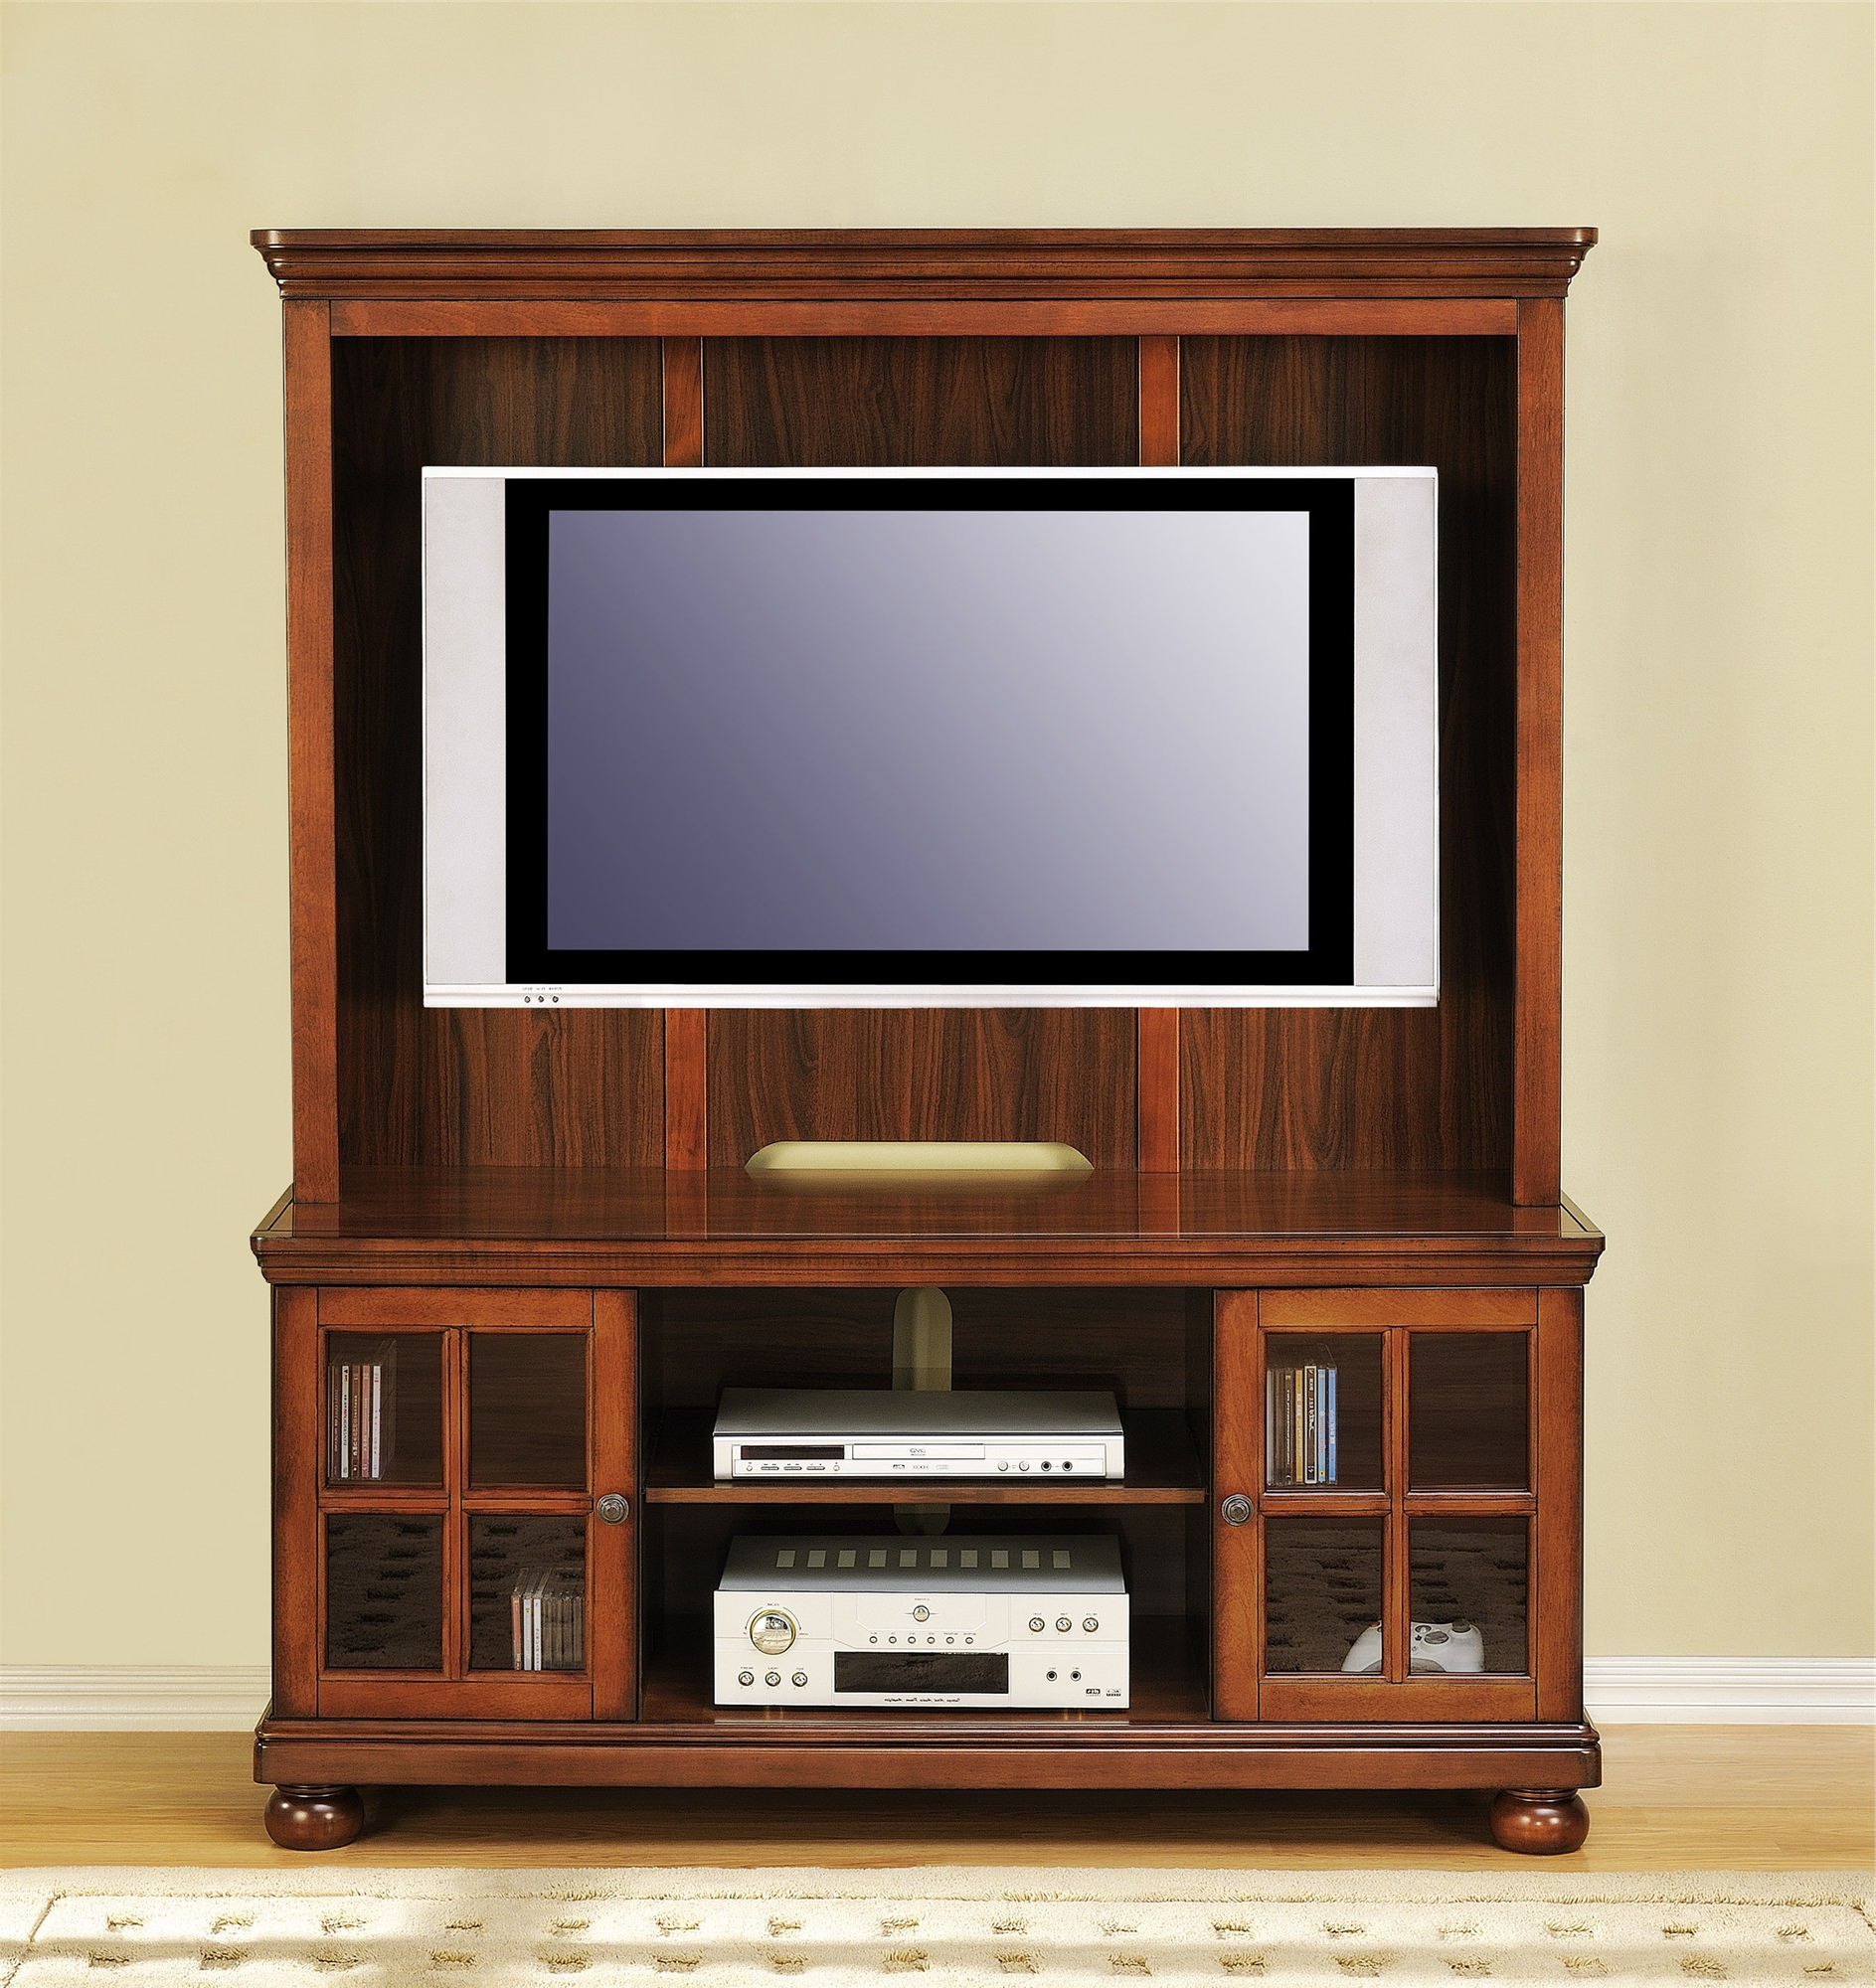 Recent Wooden Tv Stands For Flat Screens Intended For Tv Stand Design Ideas Costco Stands For Flat Screens Home Furniture (View 15 of 20)